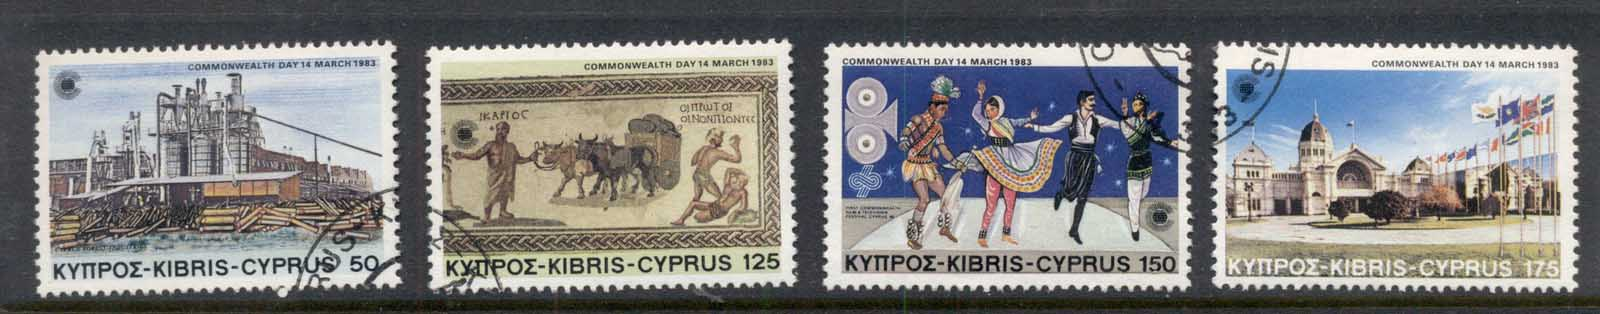 Cyprus 1983 Commonwealth Day FU